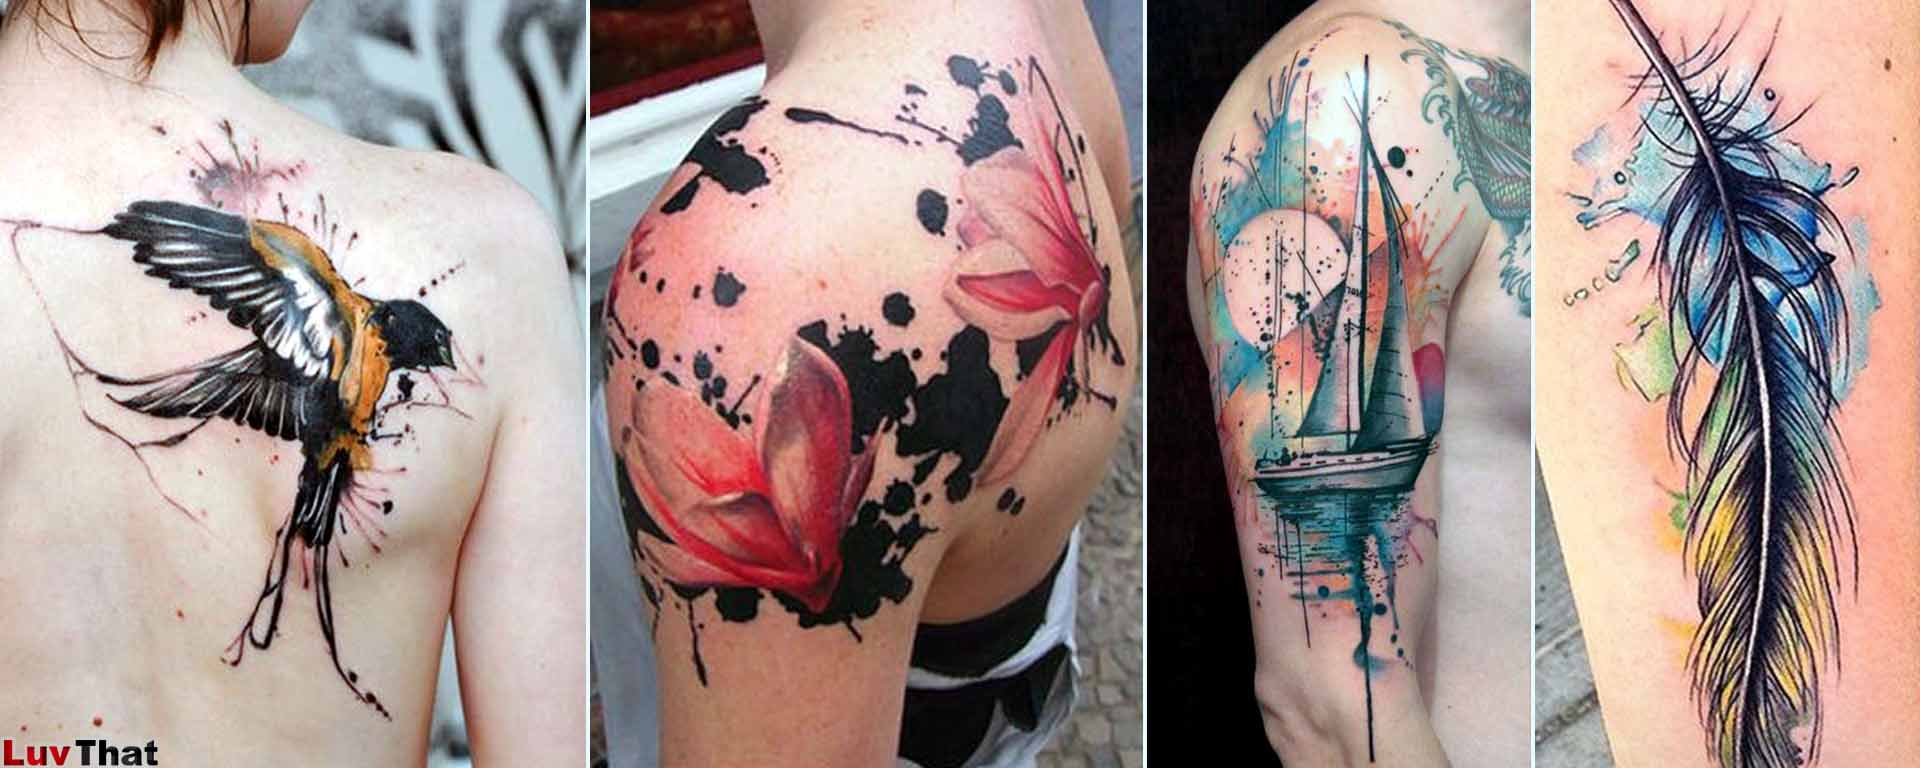 Featured watercolor tattoos